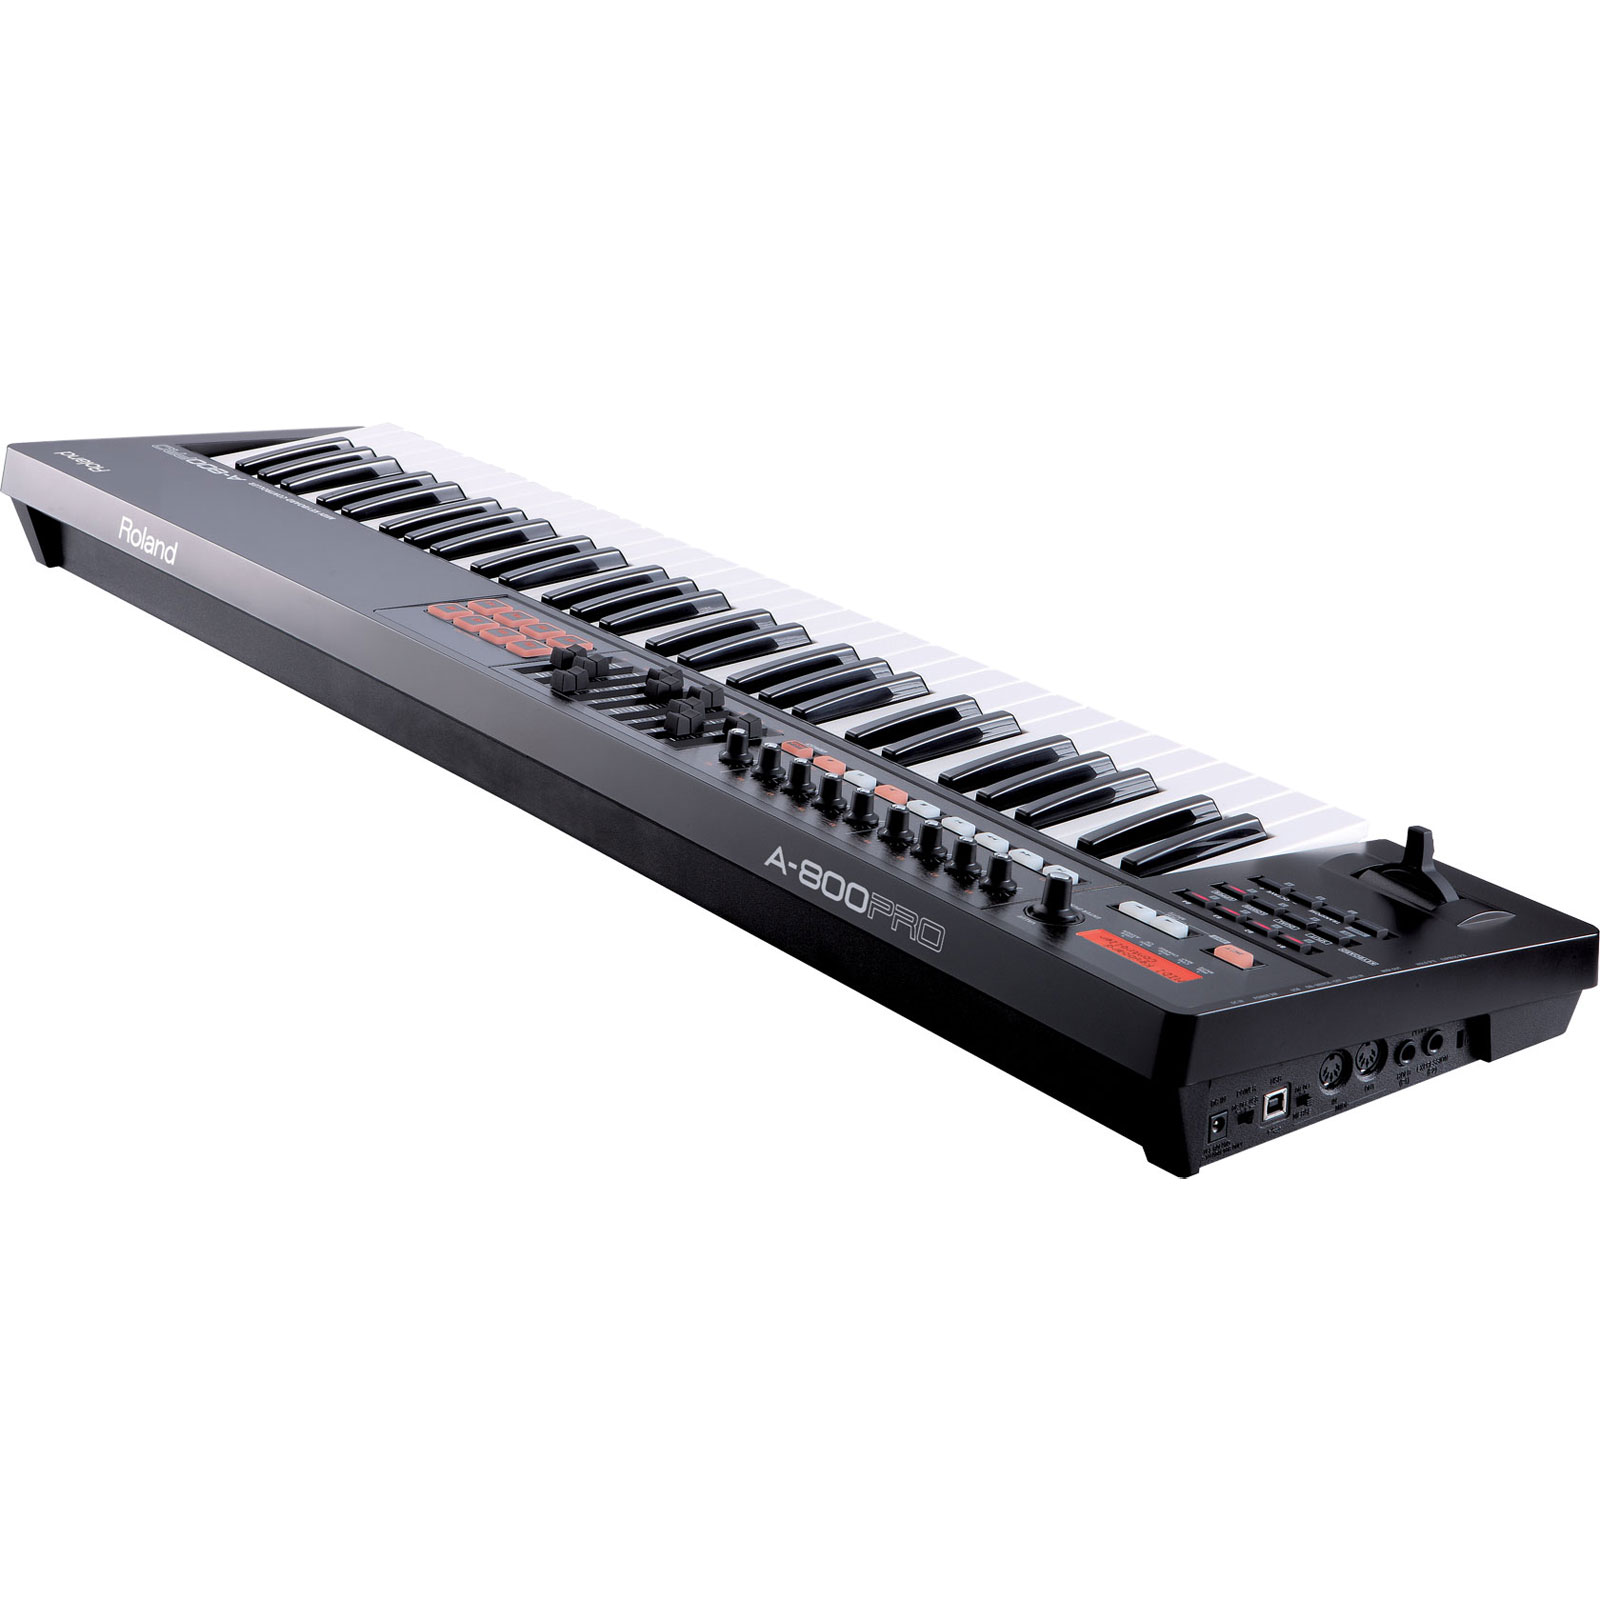 roland a pro series 61 key pro midi keyboard controller a 800pro r. Black Bedroom Furniture Sets. Home Design Ideas